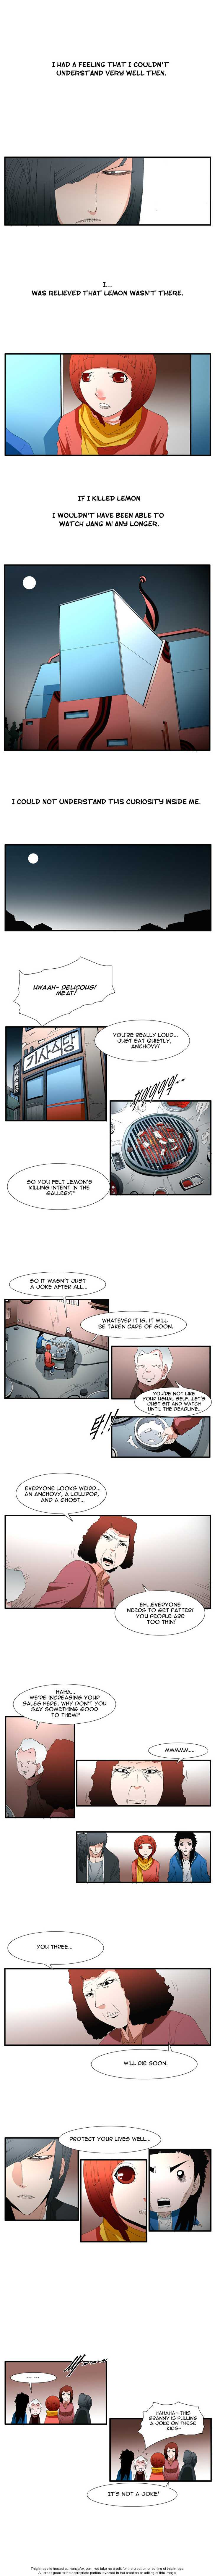 Trace 13 Page 2